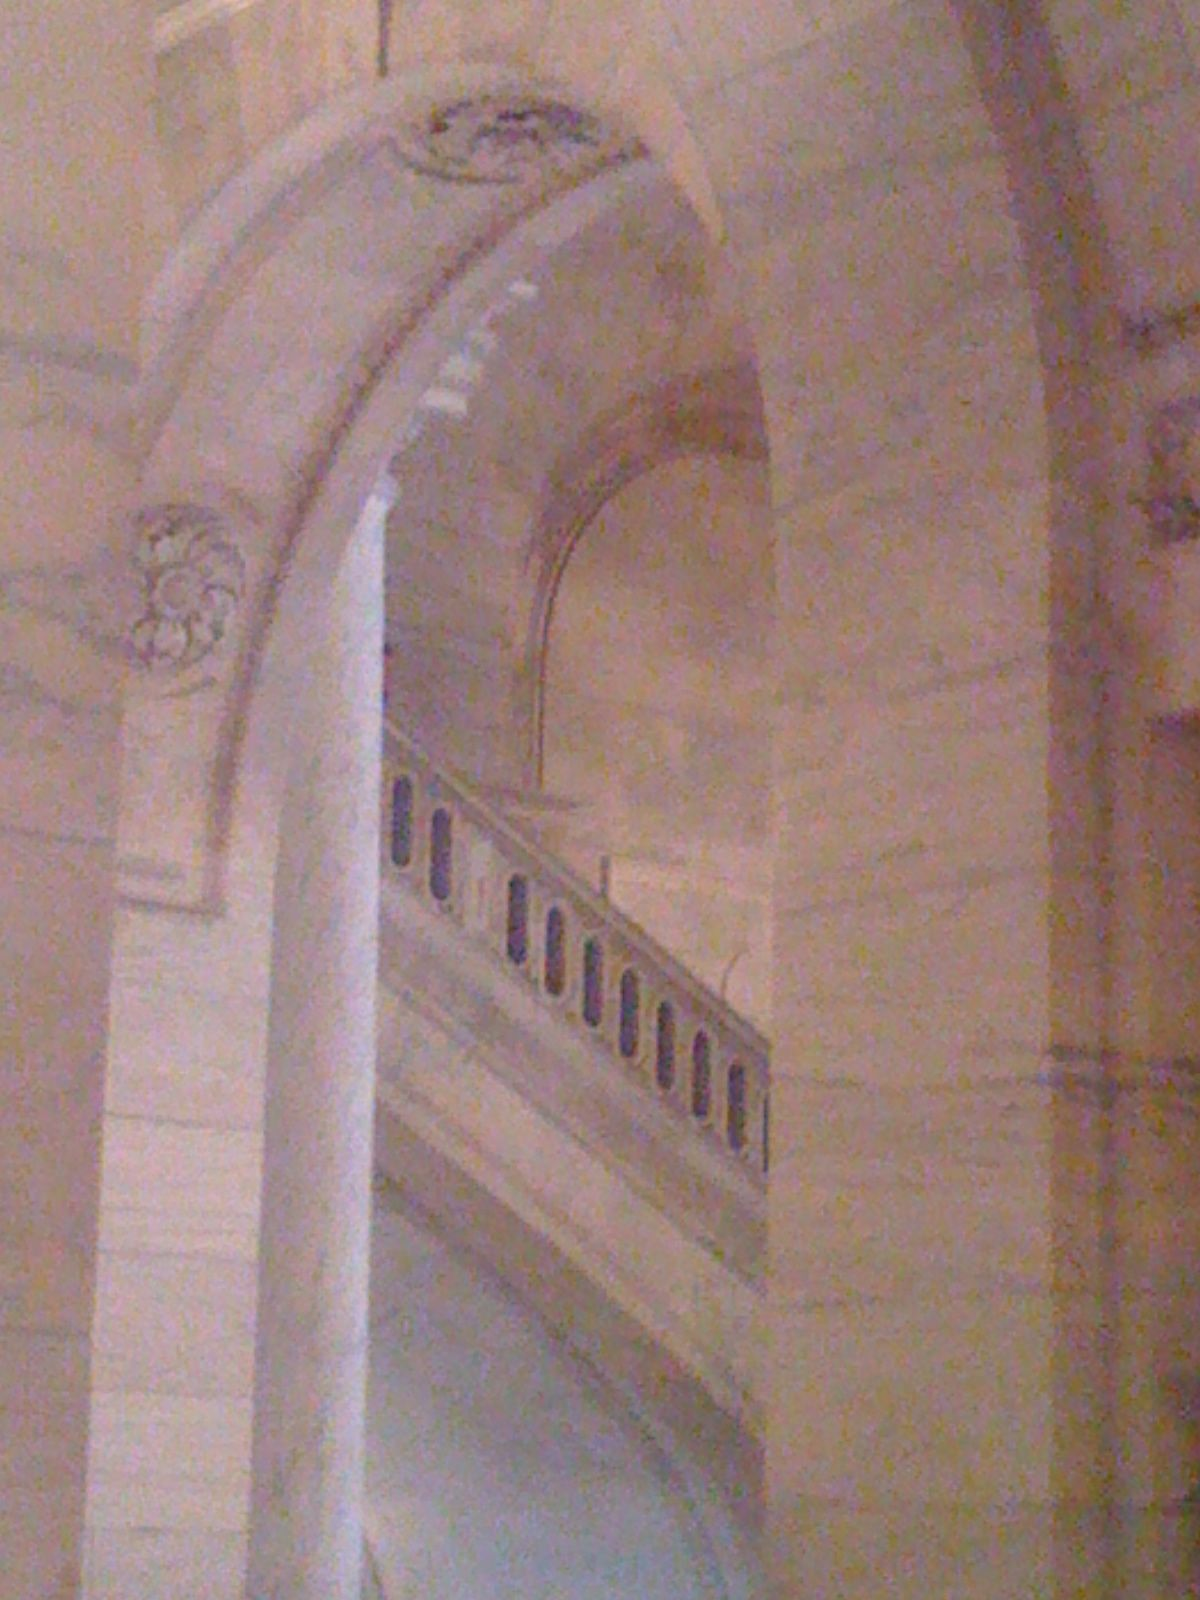 my snap shot of nyc library